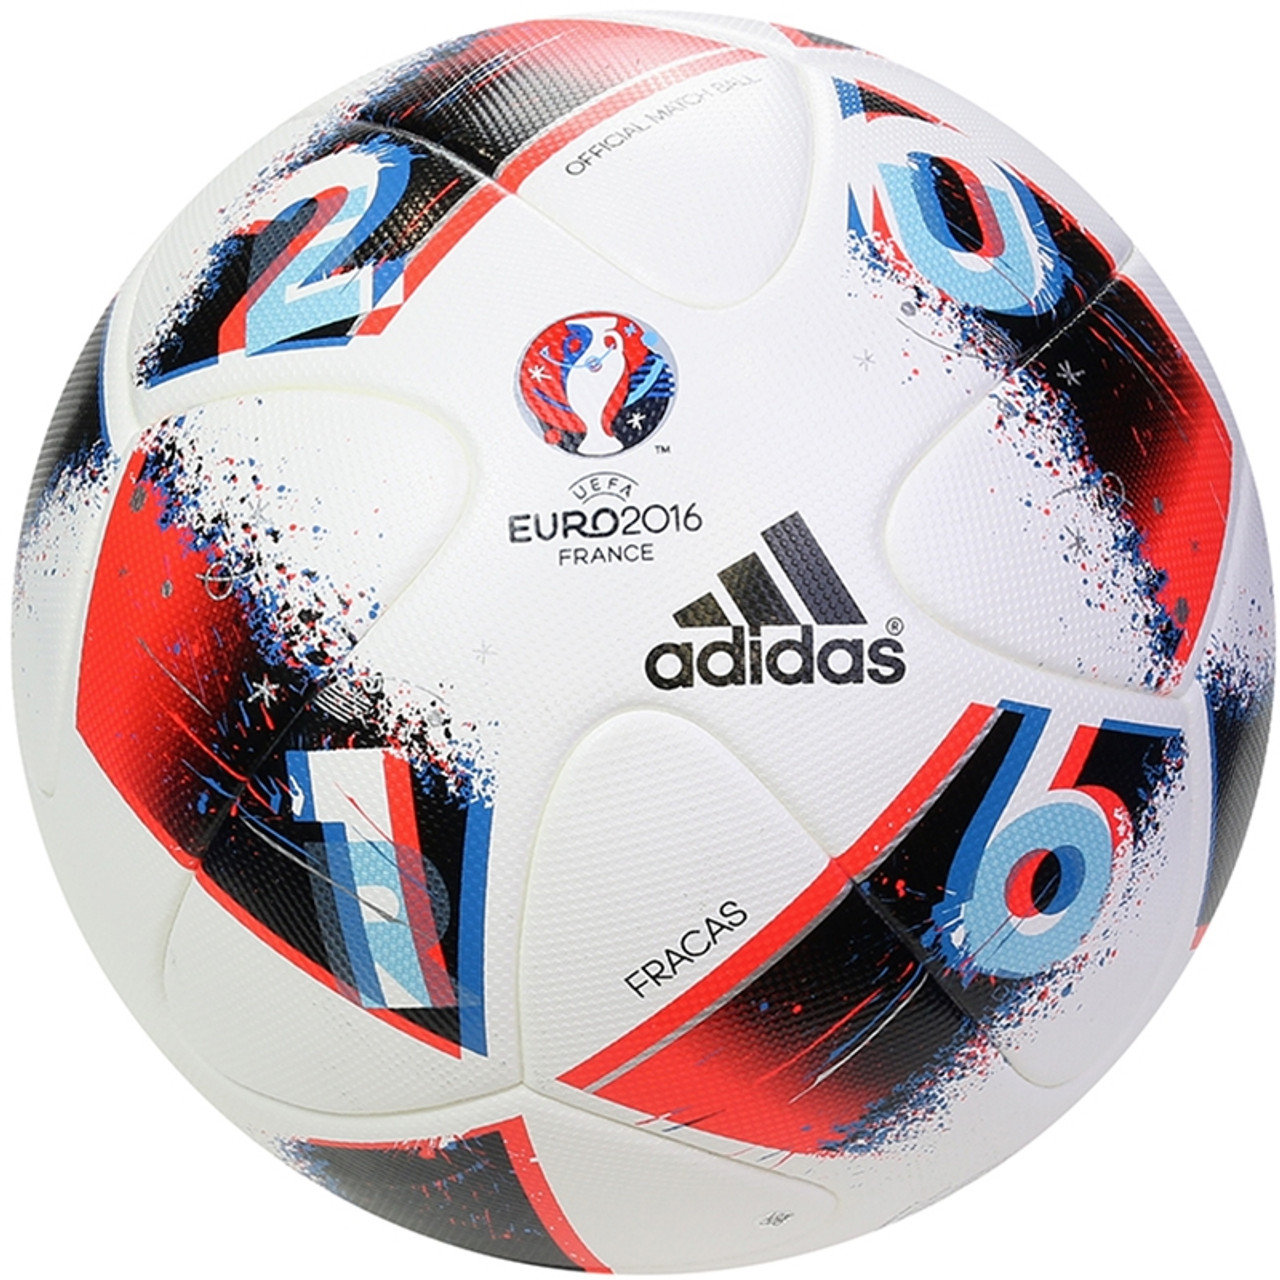 new appearance quality products new photos Adidas UEFA EURO 2016™ Official Match Ball - White/Pool/Dark Indigo (060319)